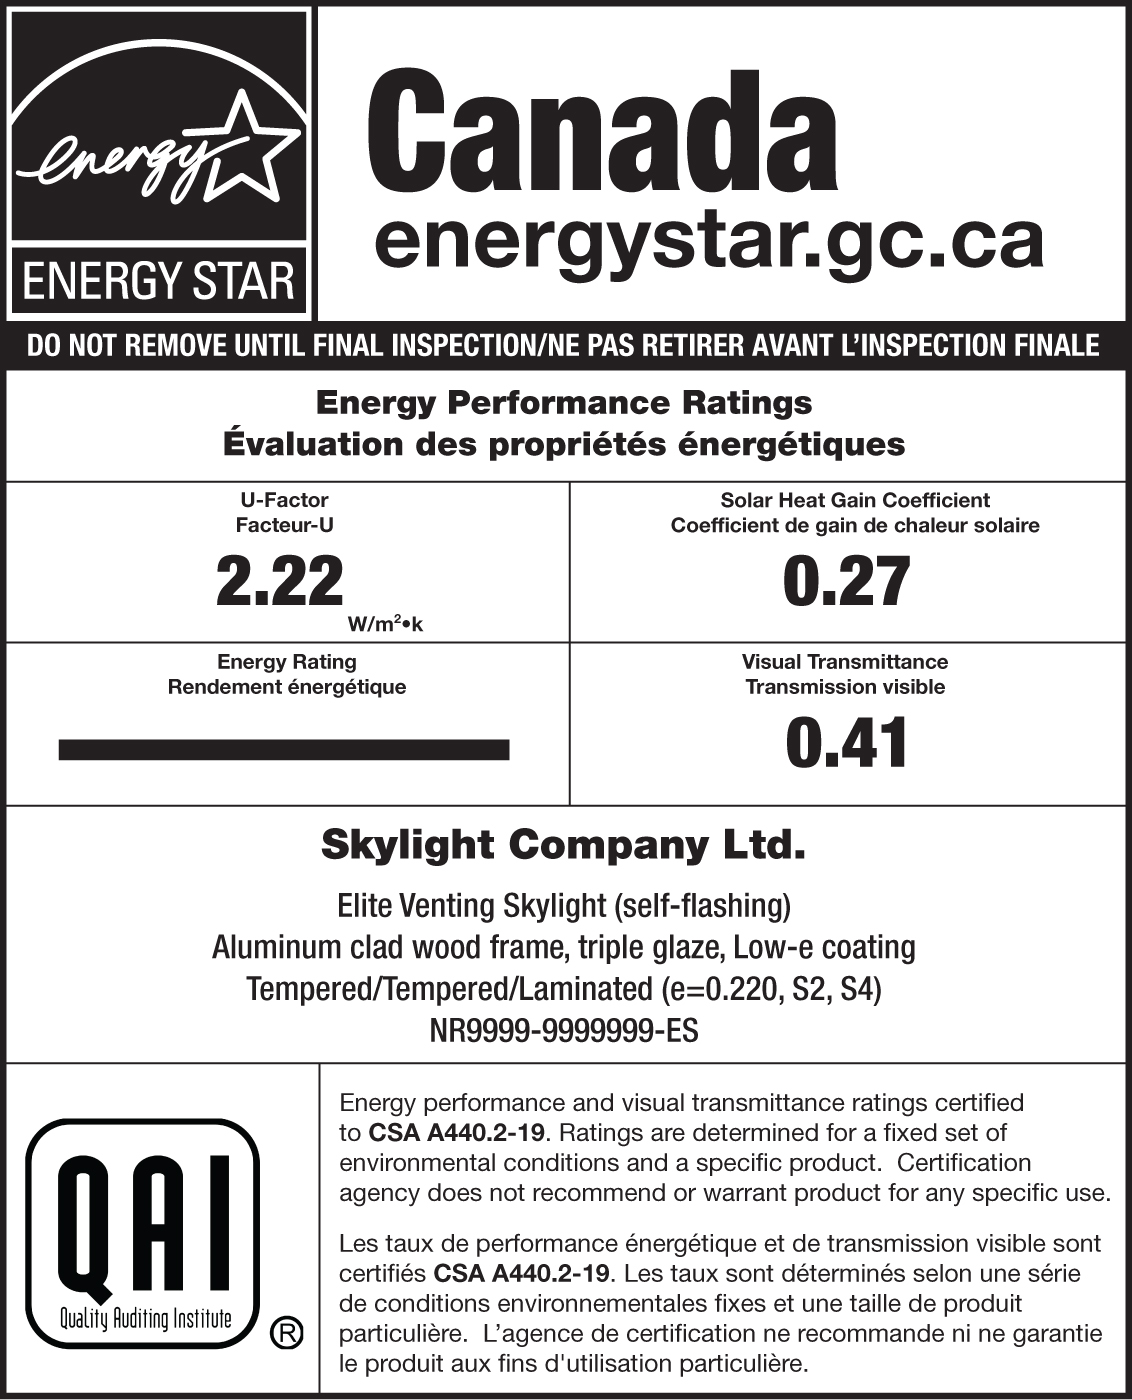 QAI ENERGY STAR Sample Label